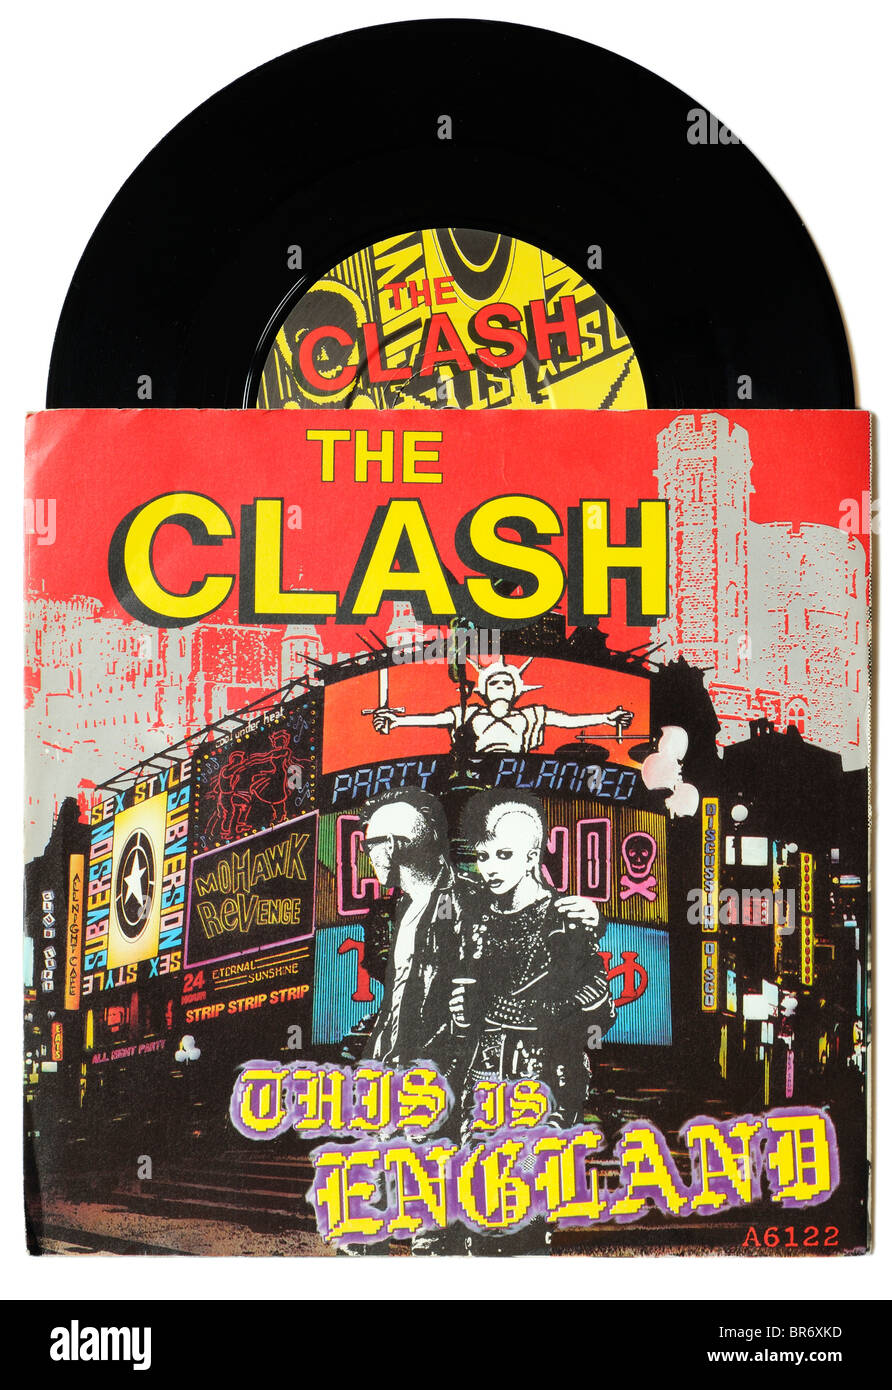 The Clash This is England single - Stock Image